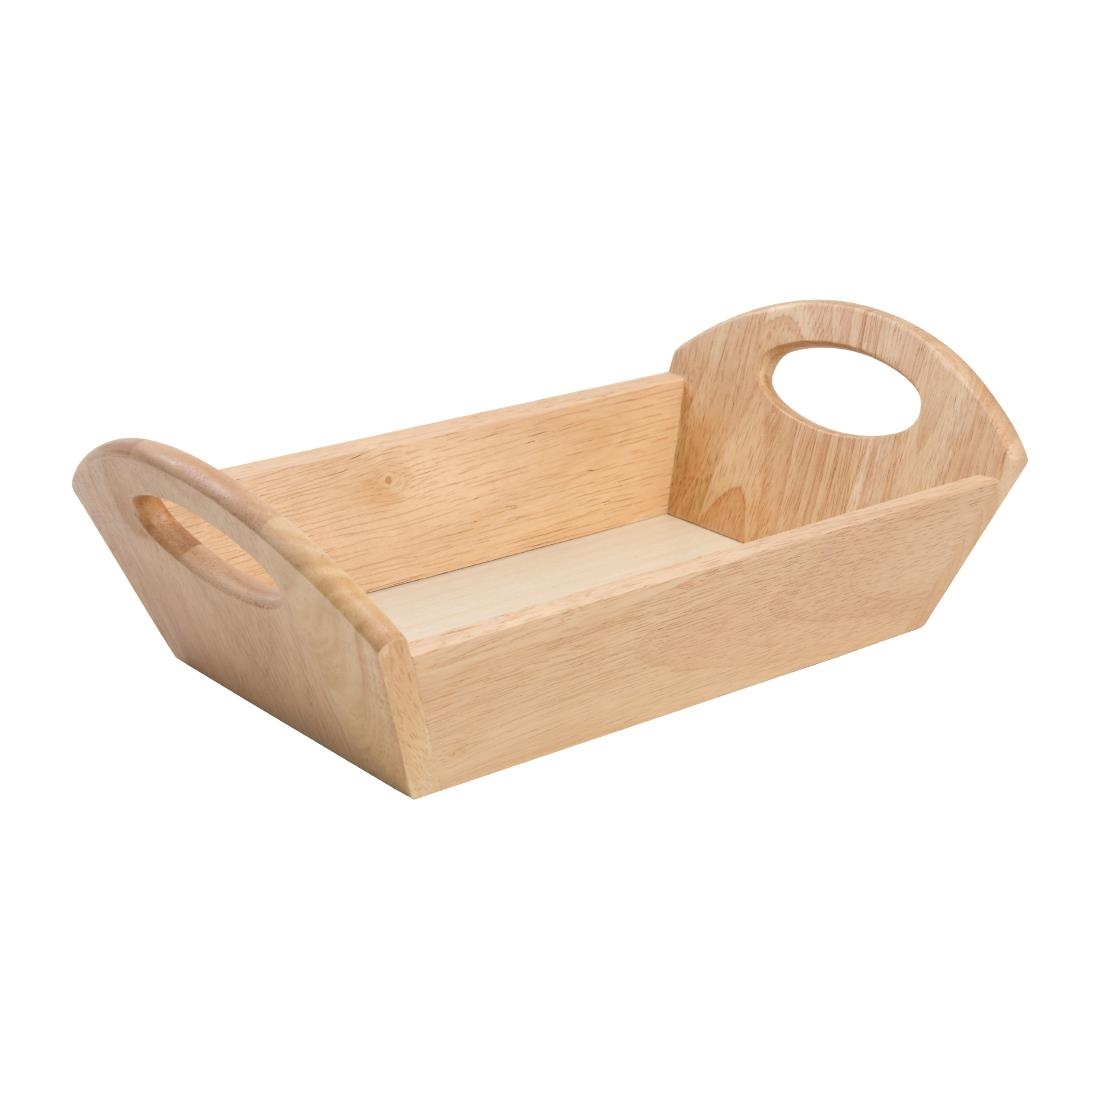 Hevea Wood Bread Basket with Handles